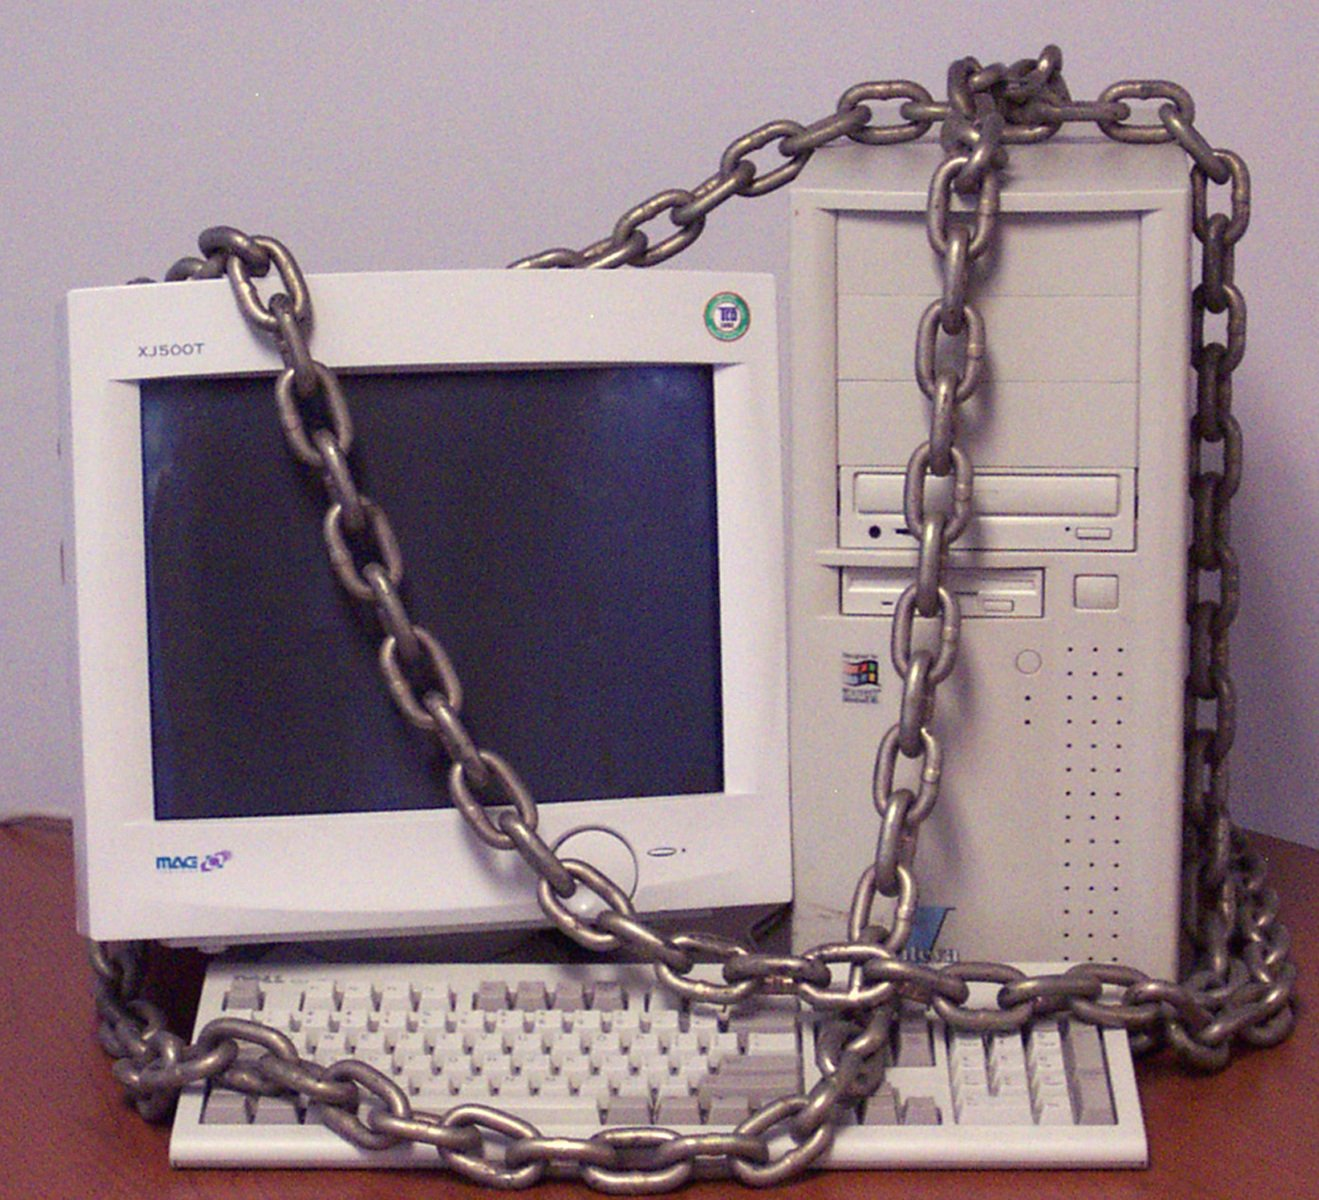 A computer chained